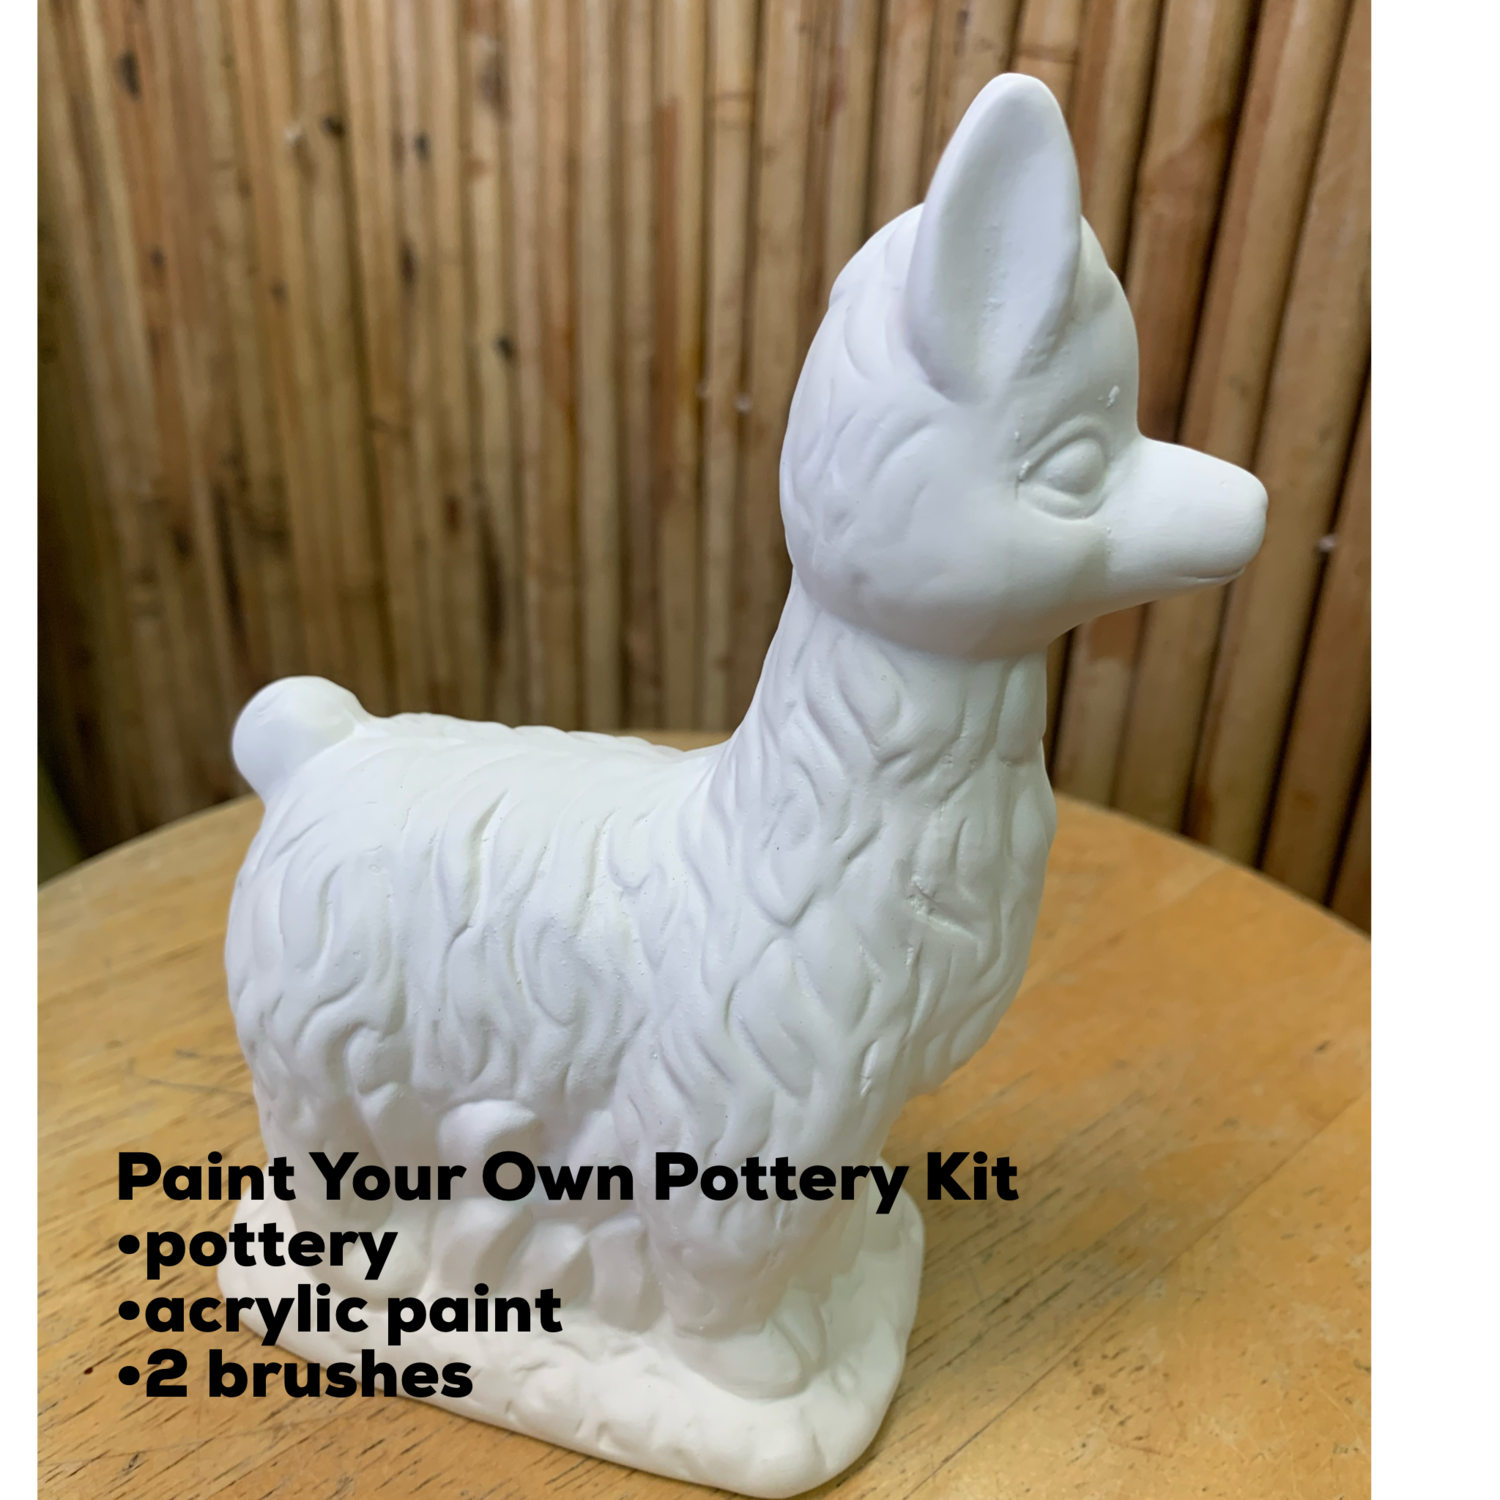 NO FIRE Paint Your Own Pottery Kit -  Ceramic Curly Llama Figurine Acrylic Painting Kit